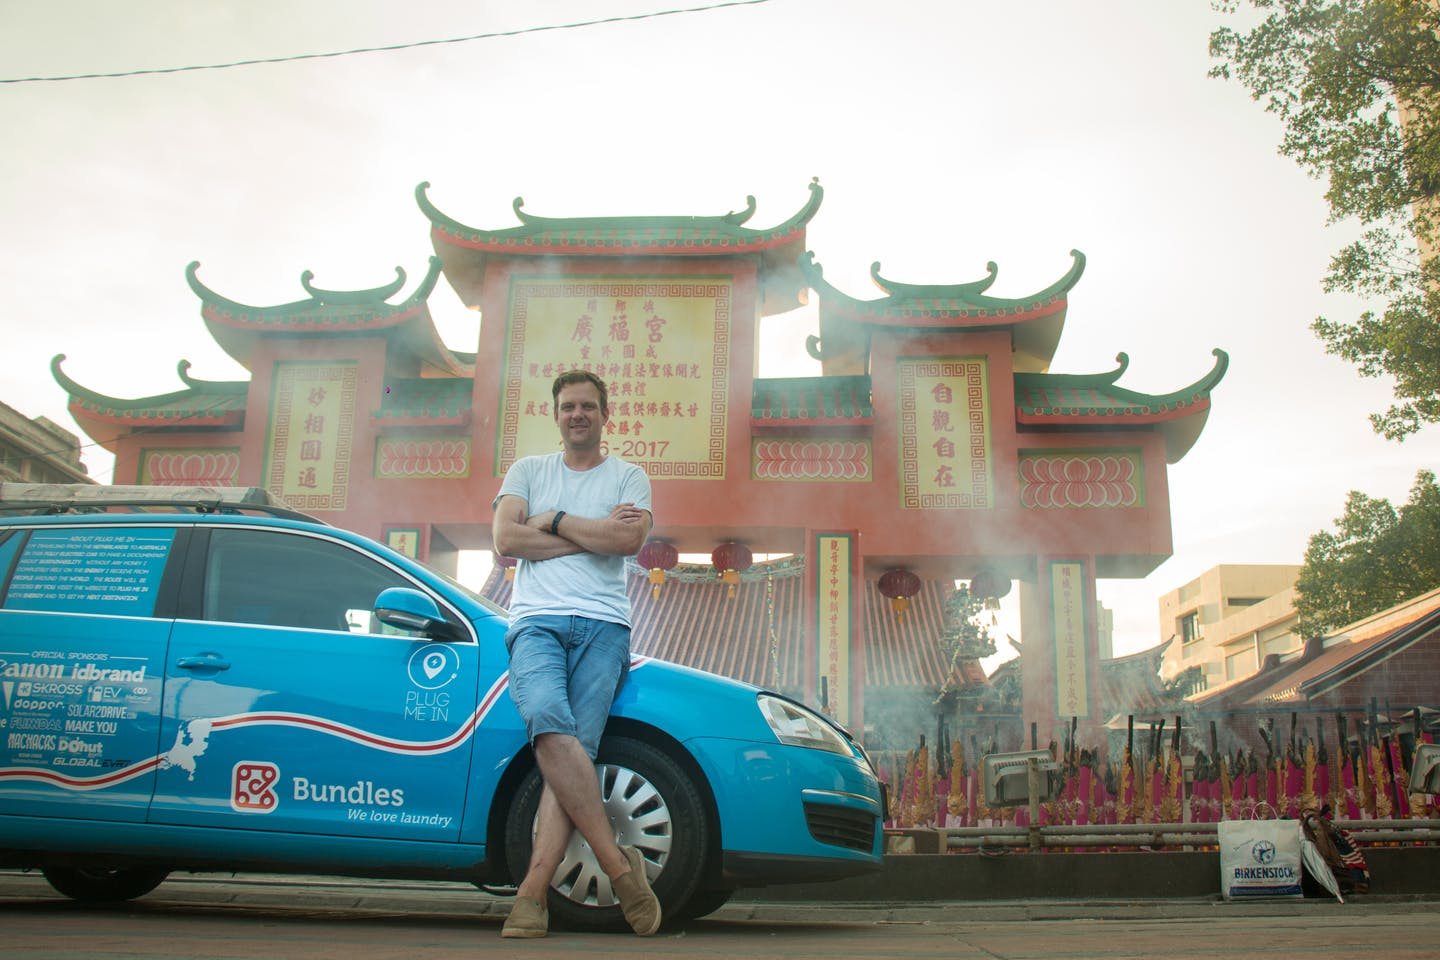 Wiebe Wakker is traveling from the Netherlands to Australia in an electric car, without any money. Image: Wiebe Wakker